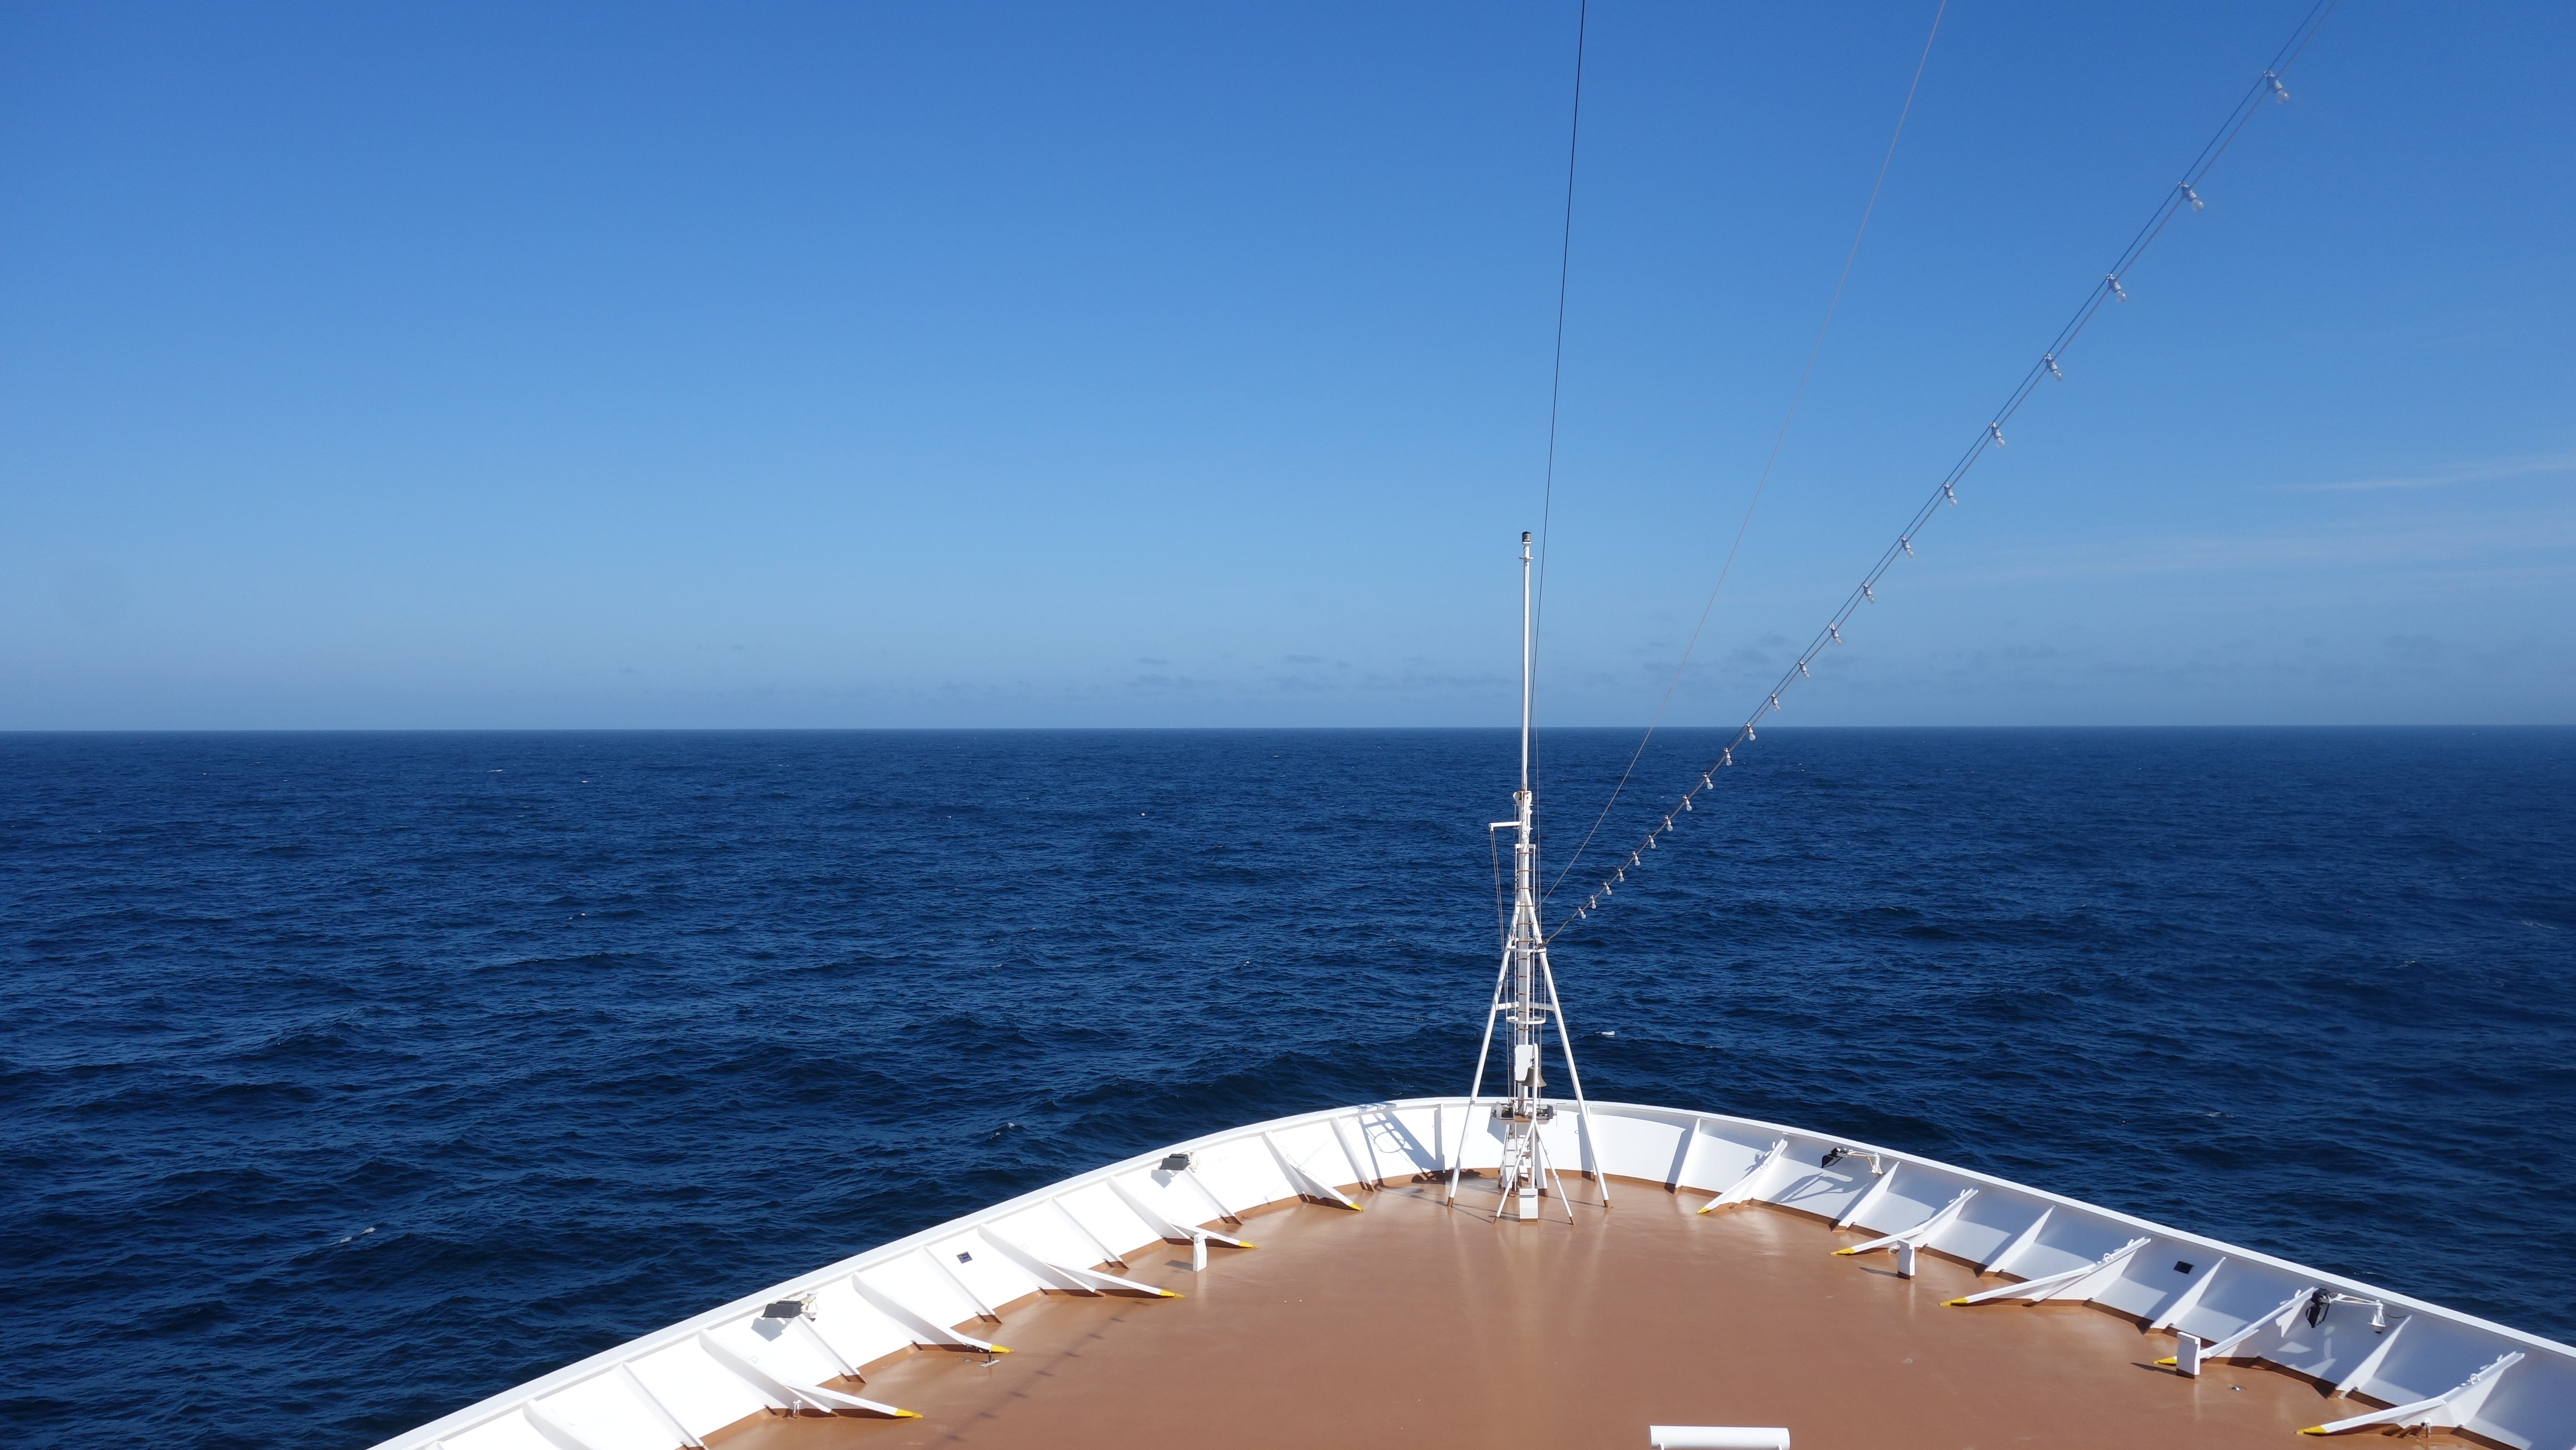 Free Images : sea, water, ocean, boat, view, travel ...